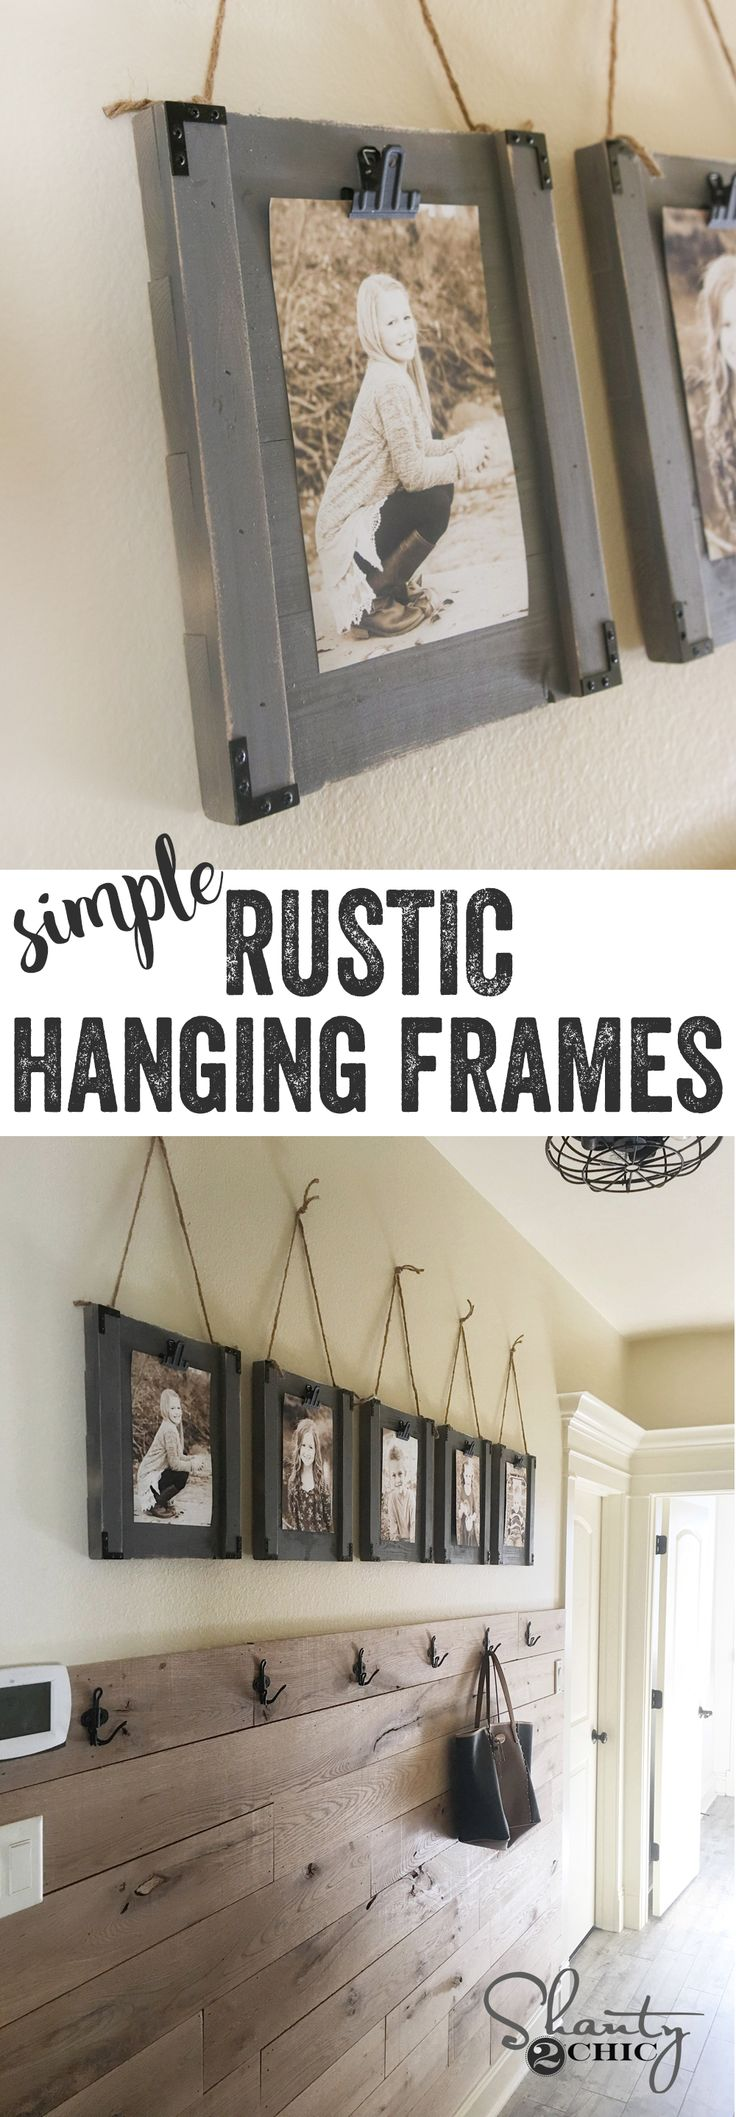 Best 25 dining room wall decor ideas on pinterest rustic diy hanging frames and youtube video wall decor amipublicfo Image collections